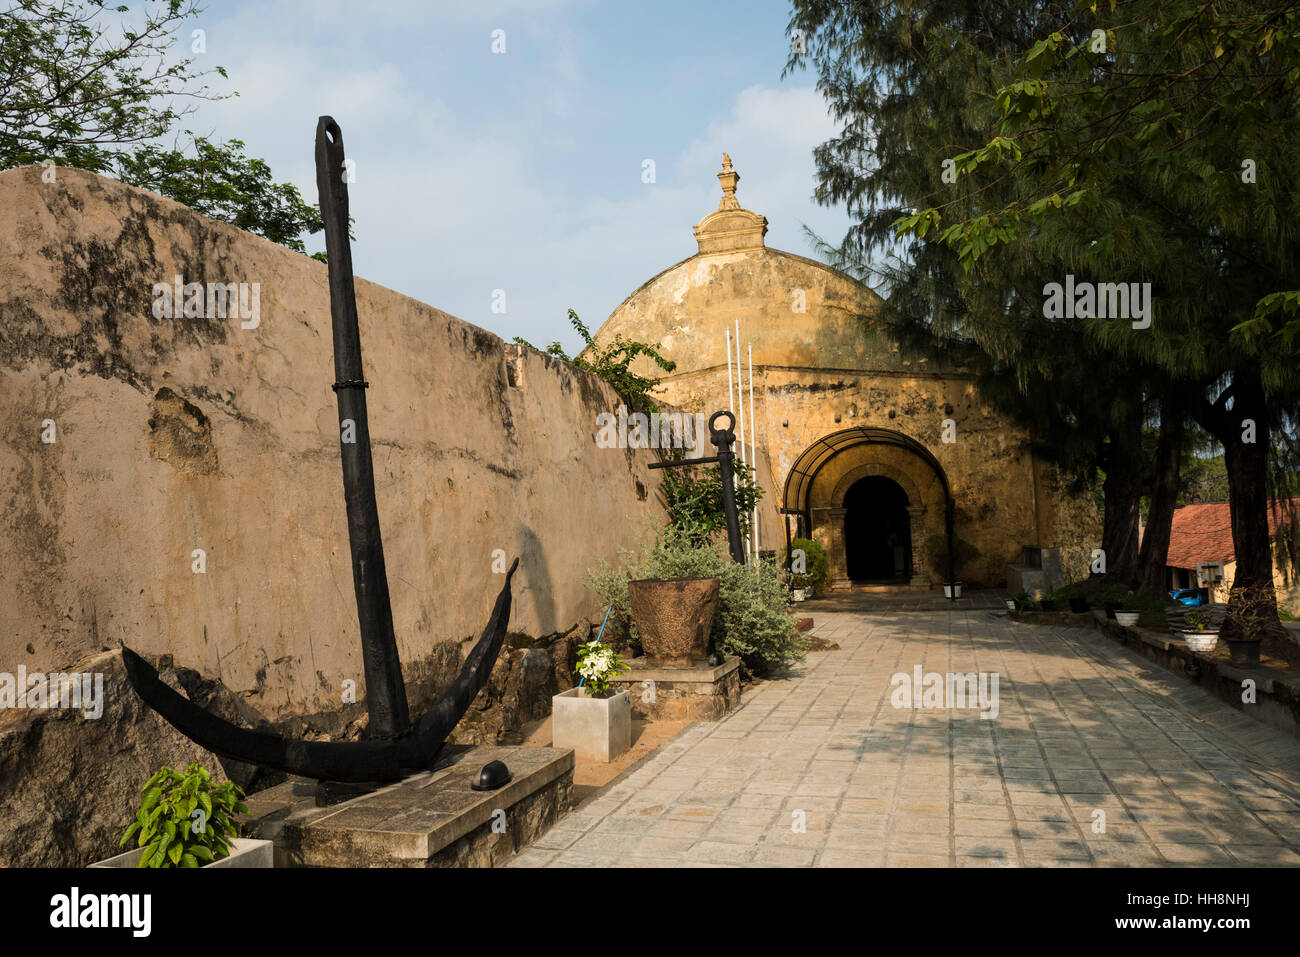 National Maritime Archaeology Museum housed in former Dutch warehouse, Galle Fort, Galle, Sri Lanka - Stock Image